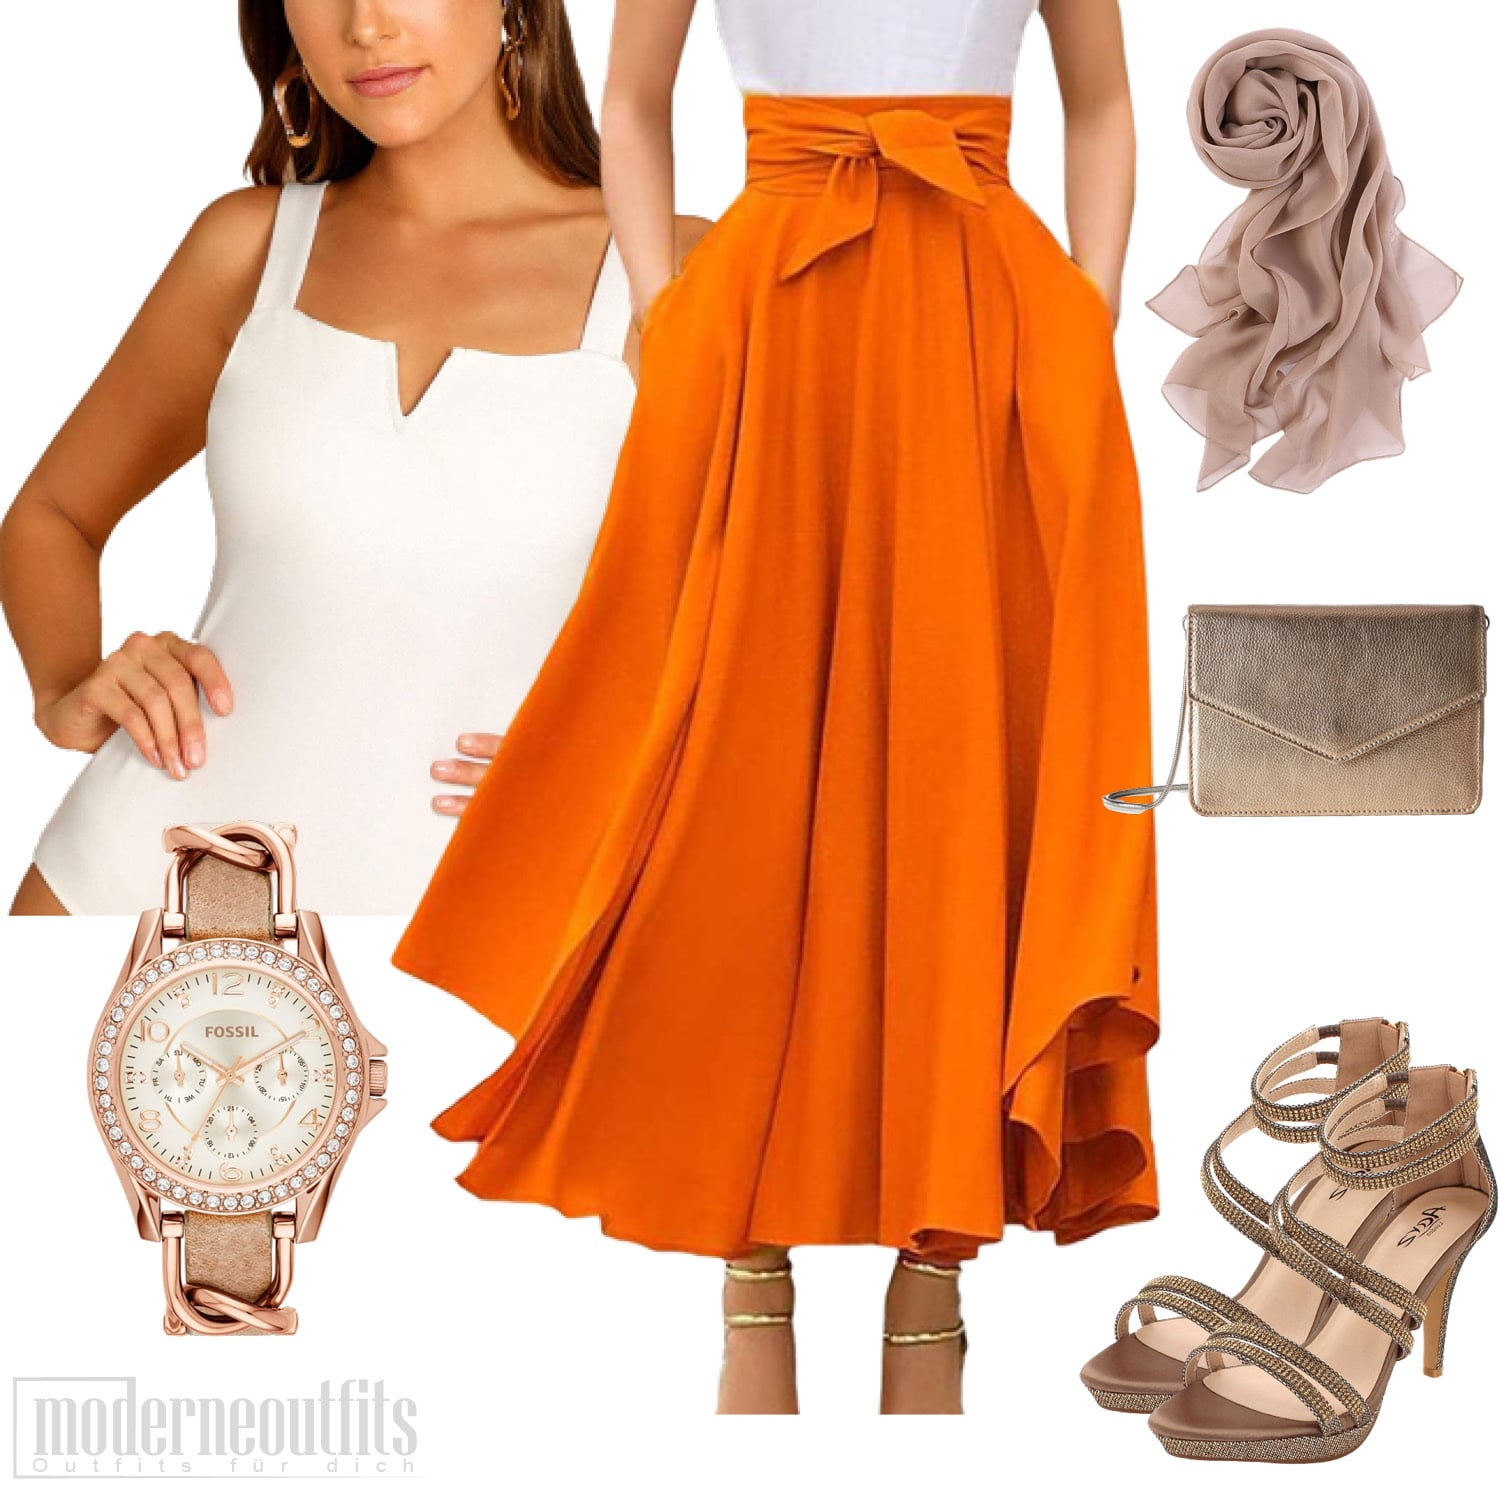 Damen Style in Orange mit Faltenrock und Body